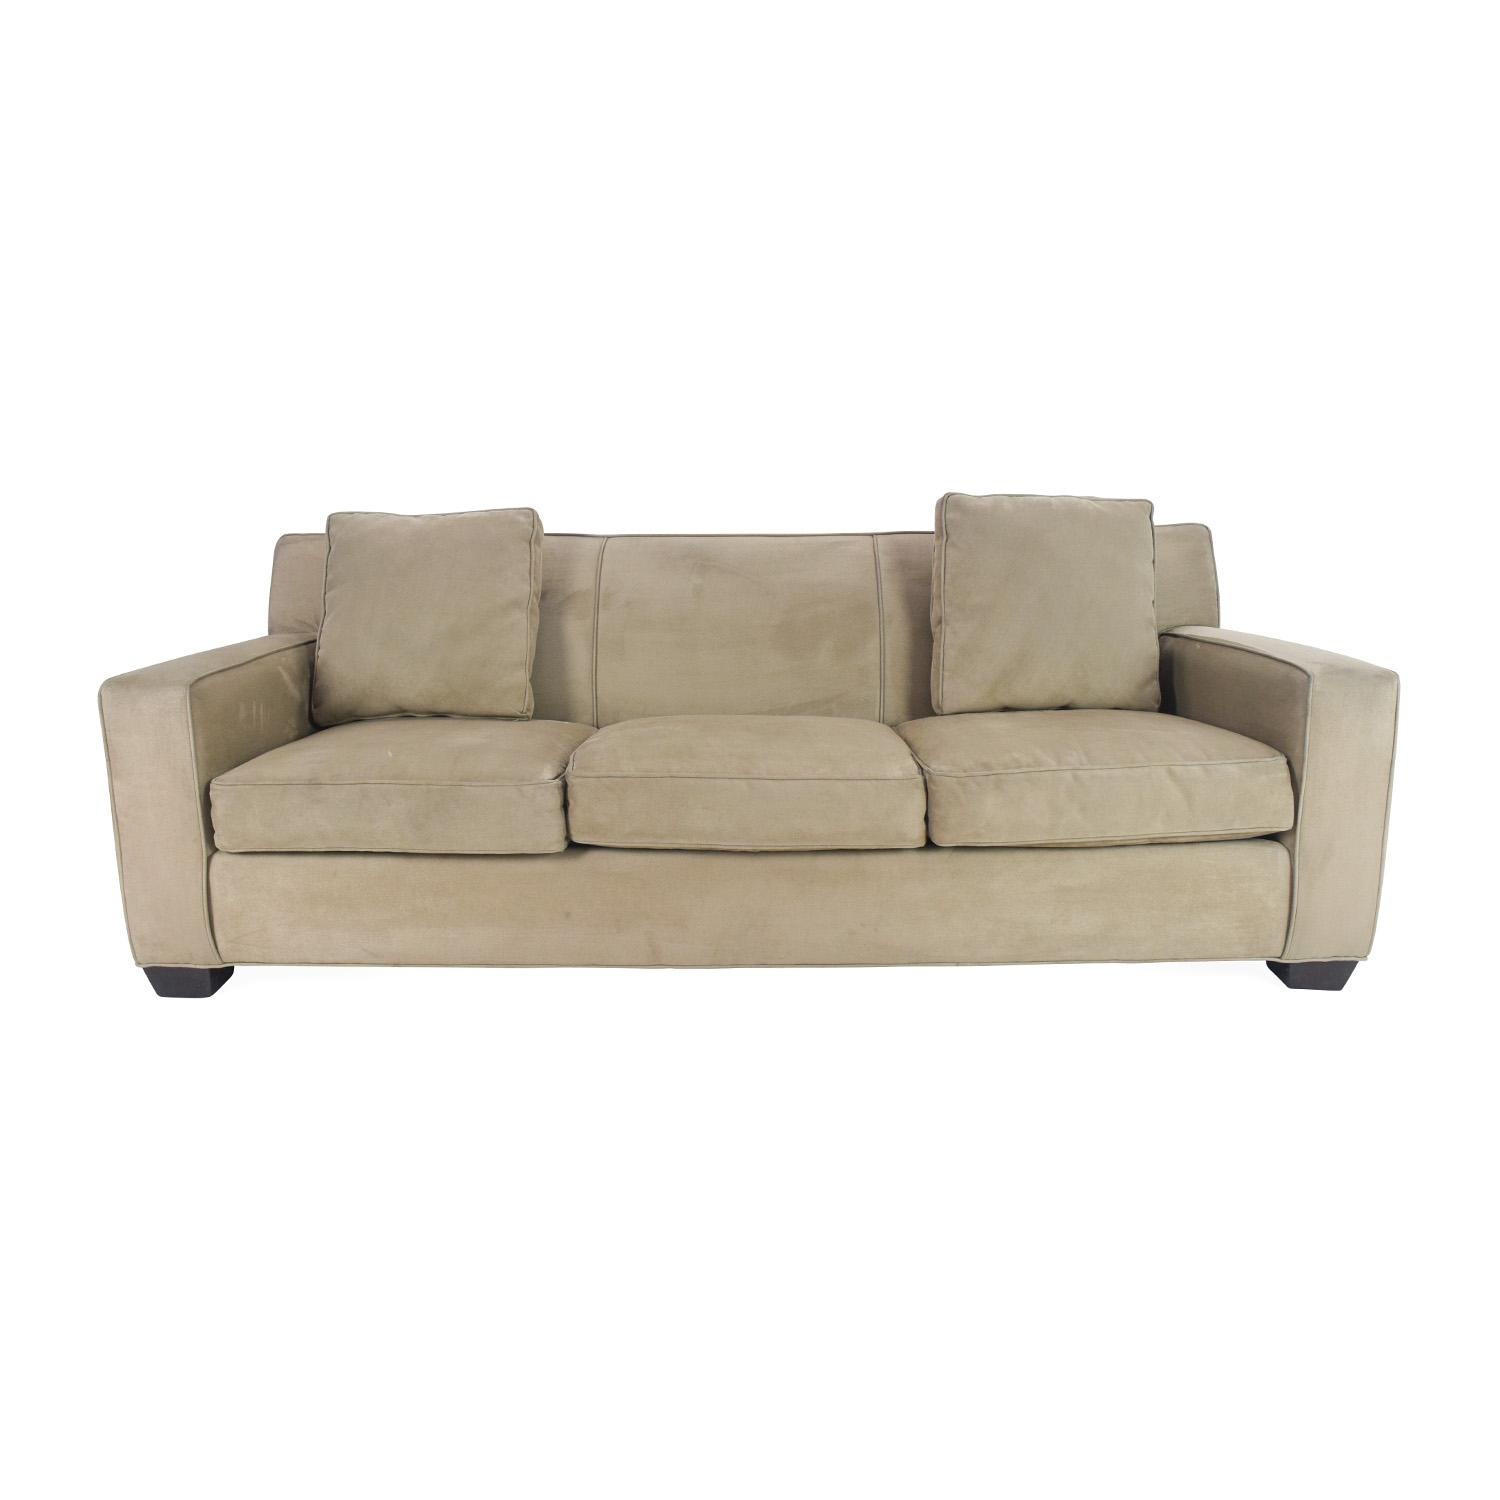 78% Off - Crate And Barrel Crate And Barrel Cameron Sofa / Sofas for Crate and Barrel Futon Sofas